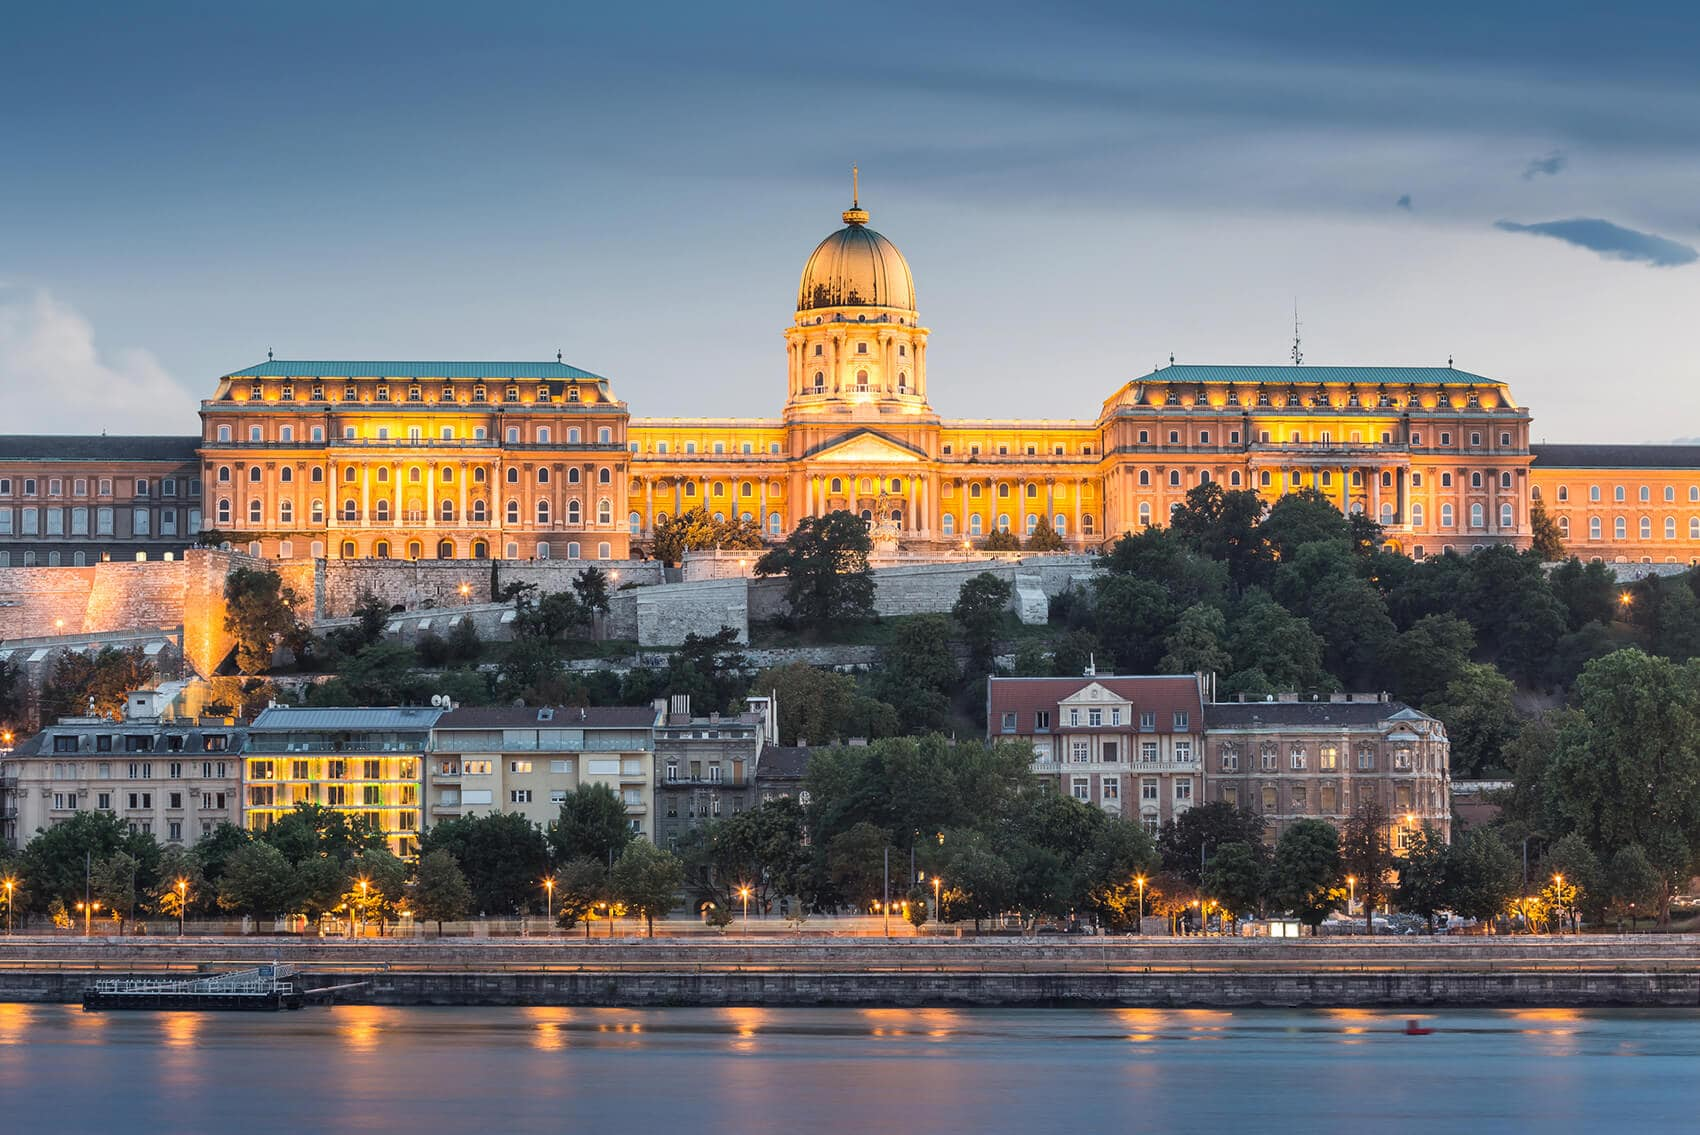 Budapest Instagram photo guide - Buda Castle at sunset